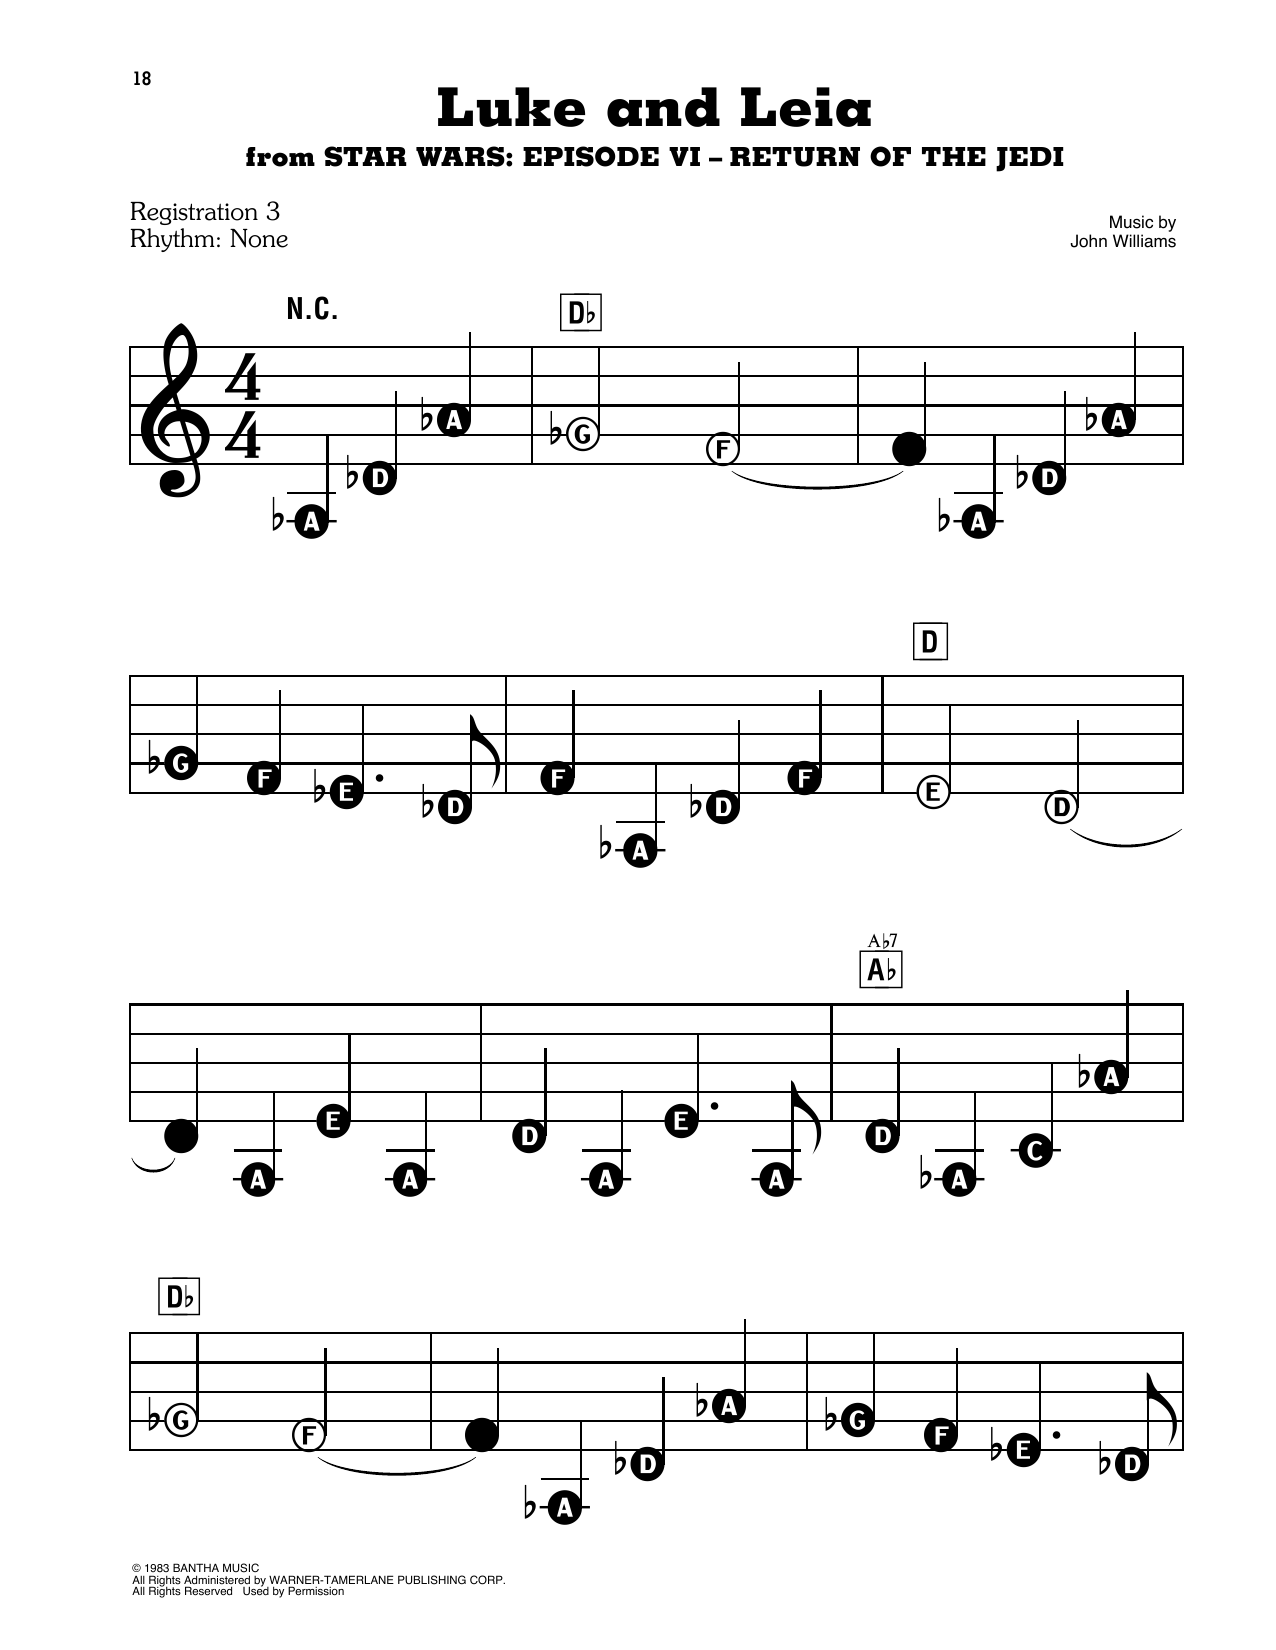 Luke And Leia (from Star Wars: Return of the Jedi) Sheet Music